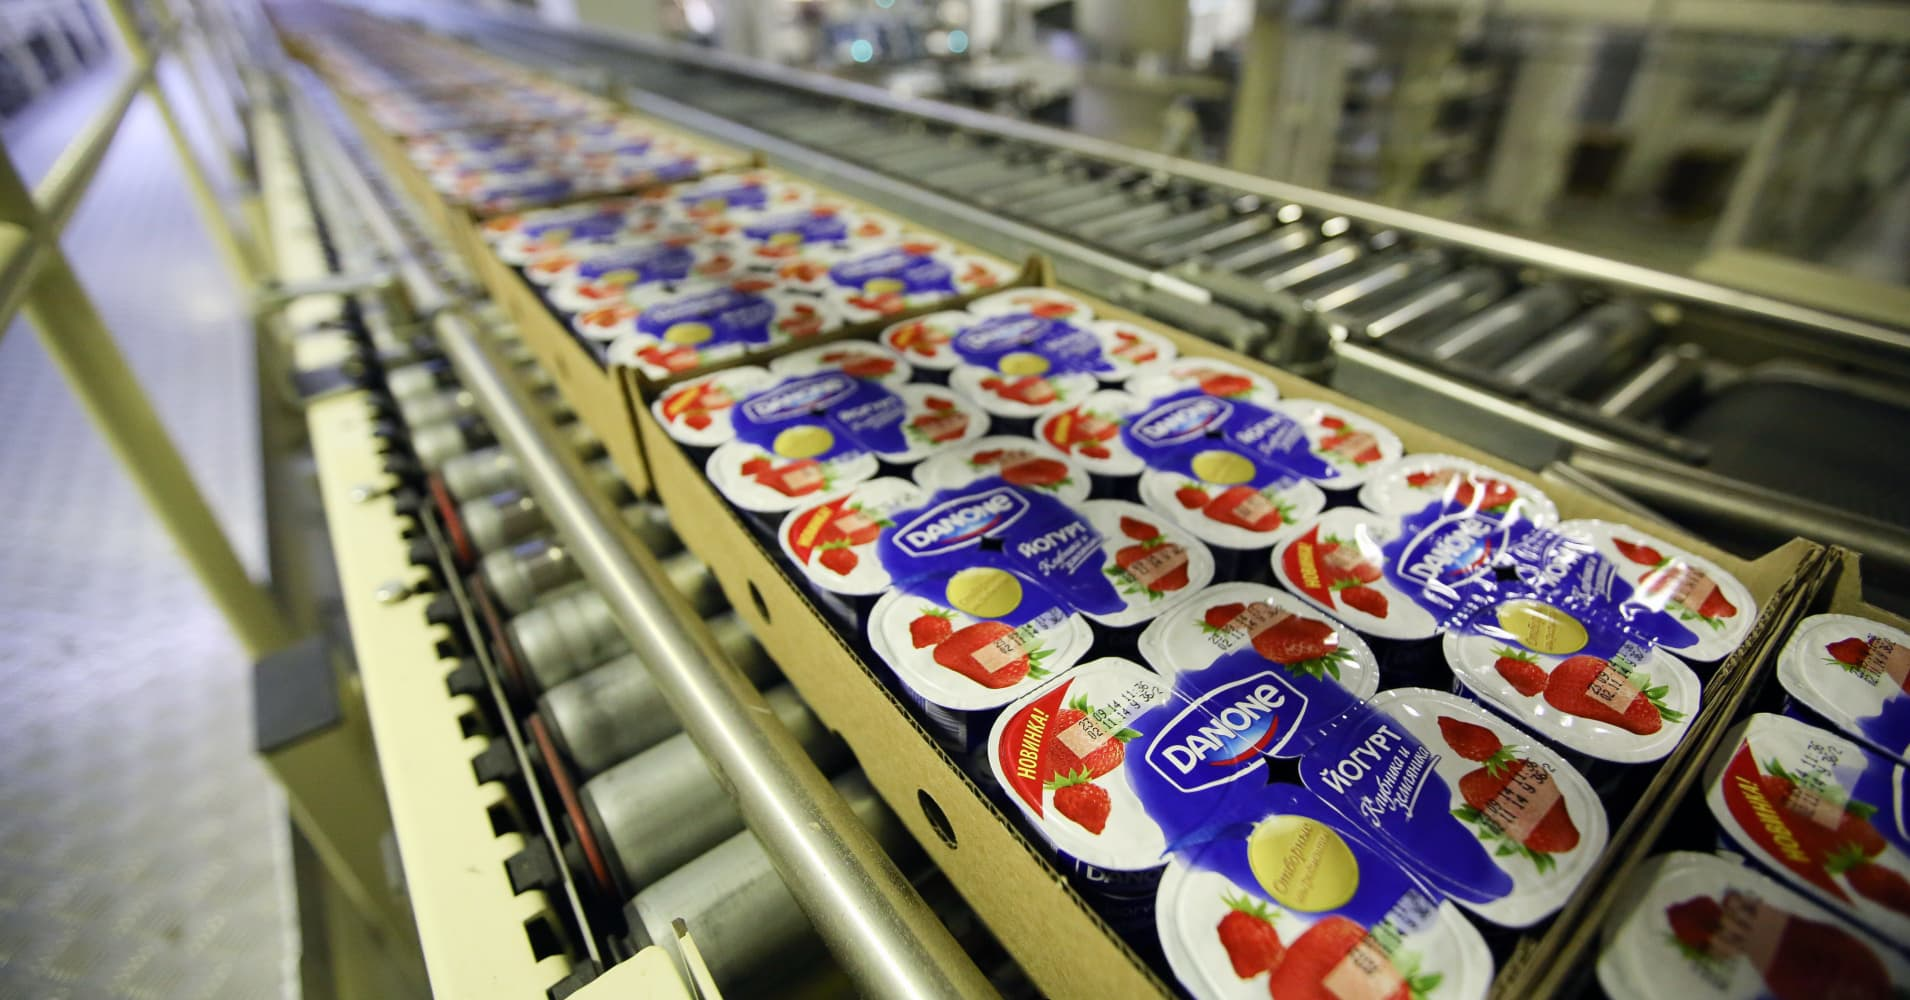 Danone To Buy WhiteWave Foods